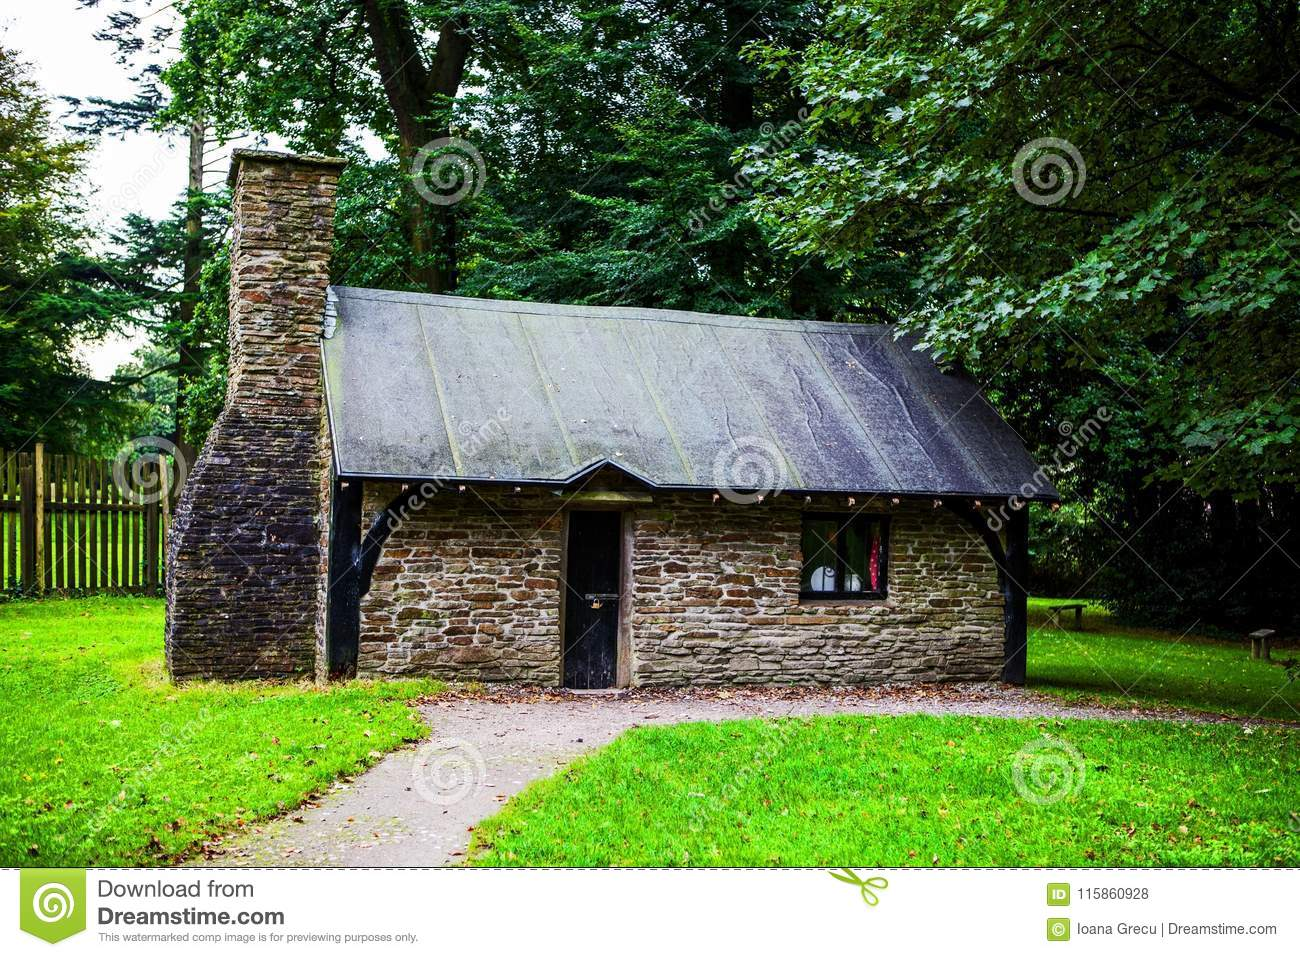 Small traditional house at Margam Park